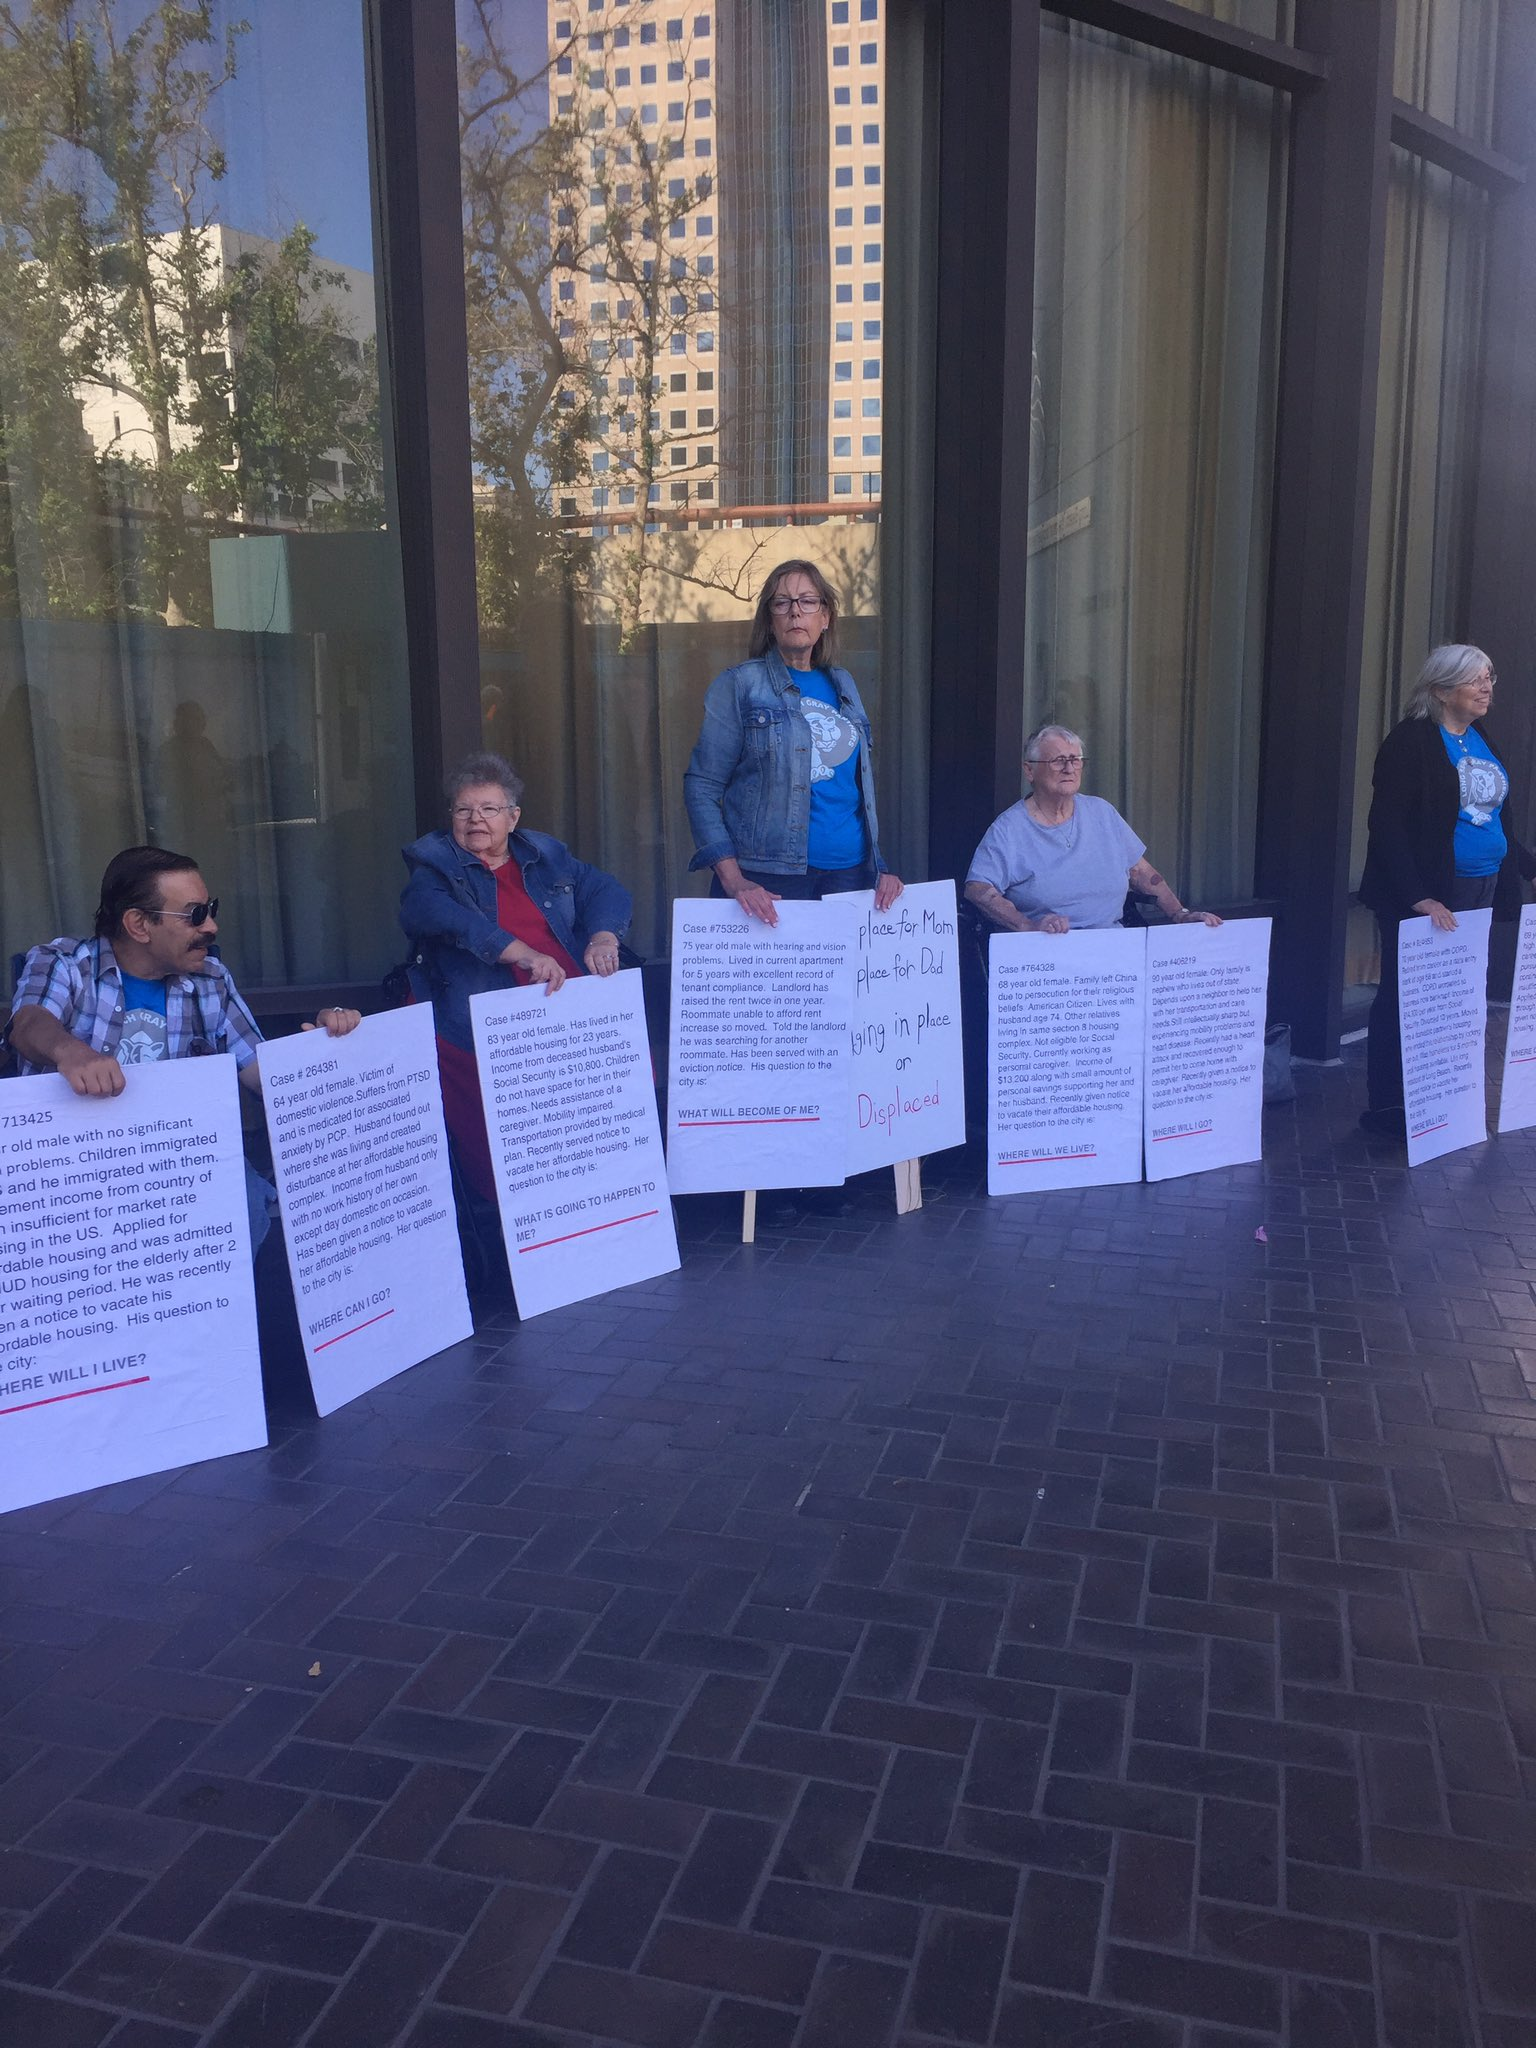 .@daily49er Renter's rally demonstration taking place outside of the city council chambers in downtown #LongBeach #49erNow https://t.co/OvKAIYRo5Q